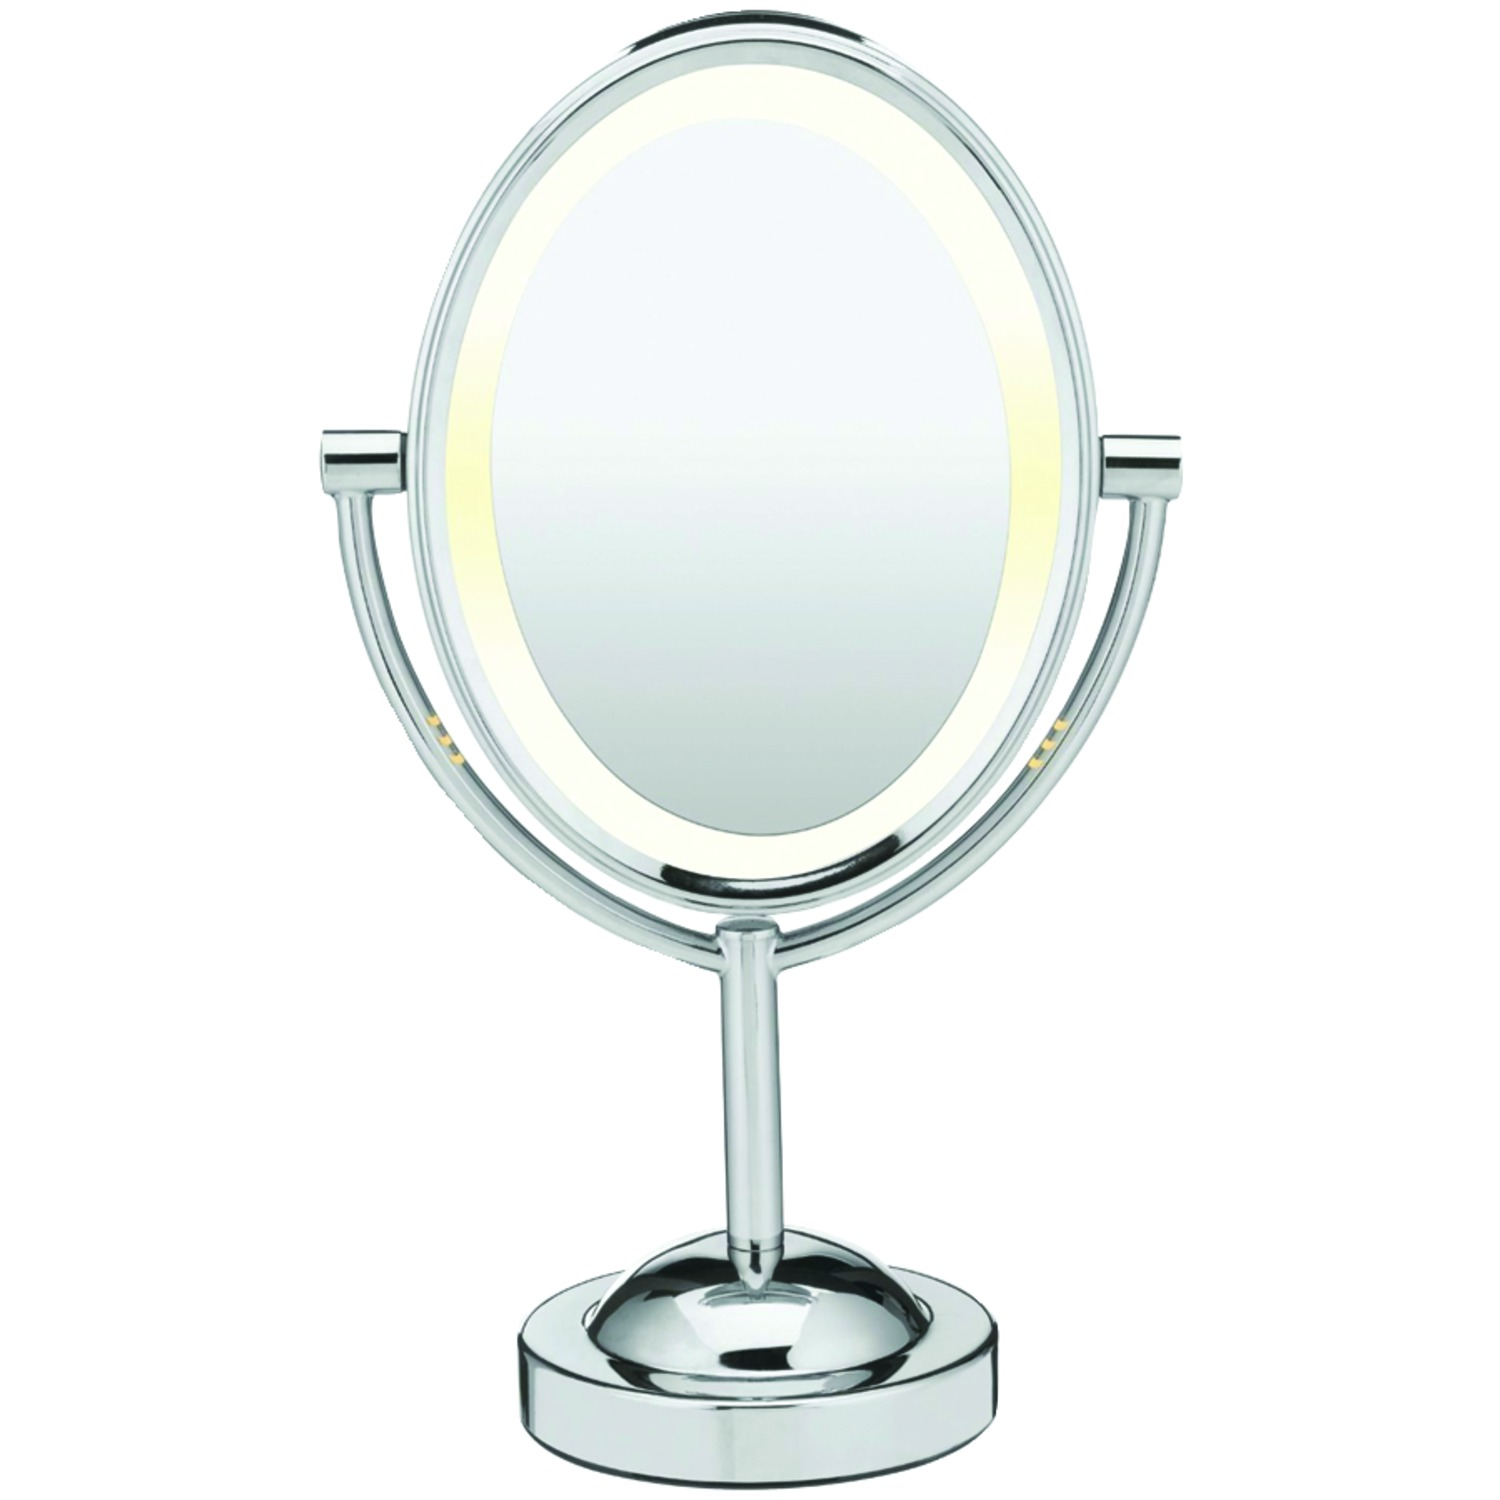 Conair Be151t Reflections Double Sided Lighted Oval Mirror